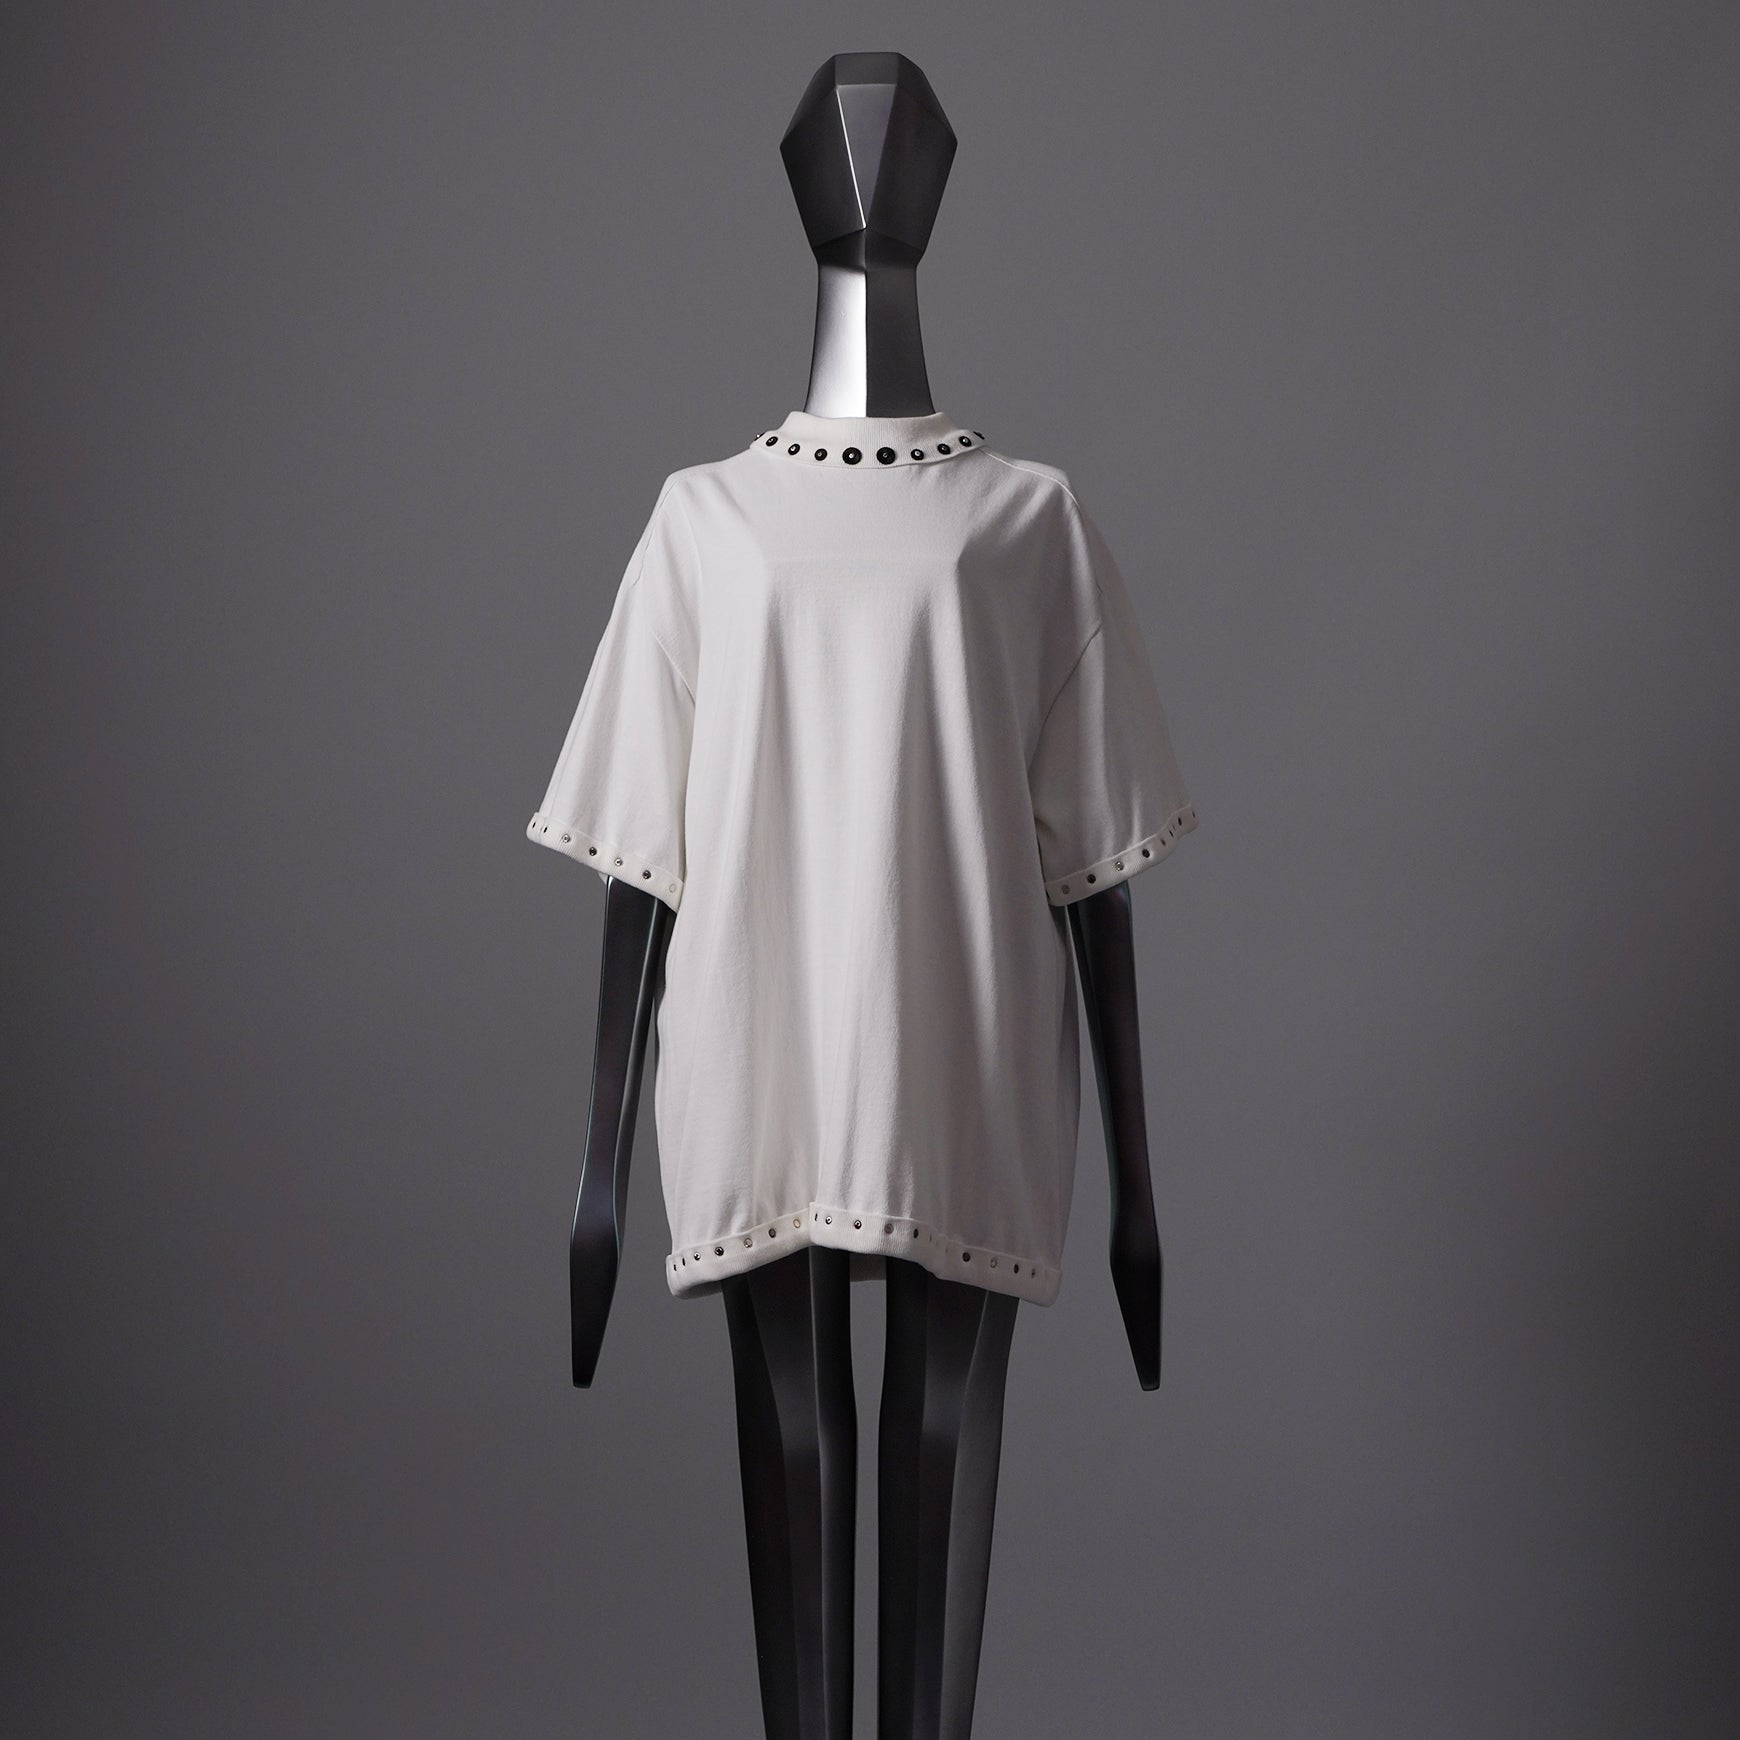 TYPE-1 Knit Organic Cotton Half Sleeves with Black Washer (White)